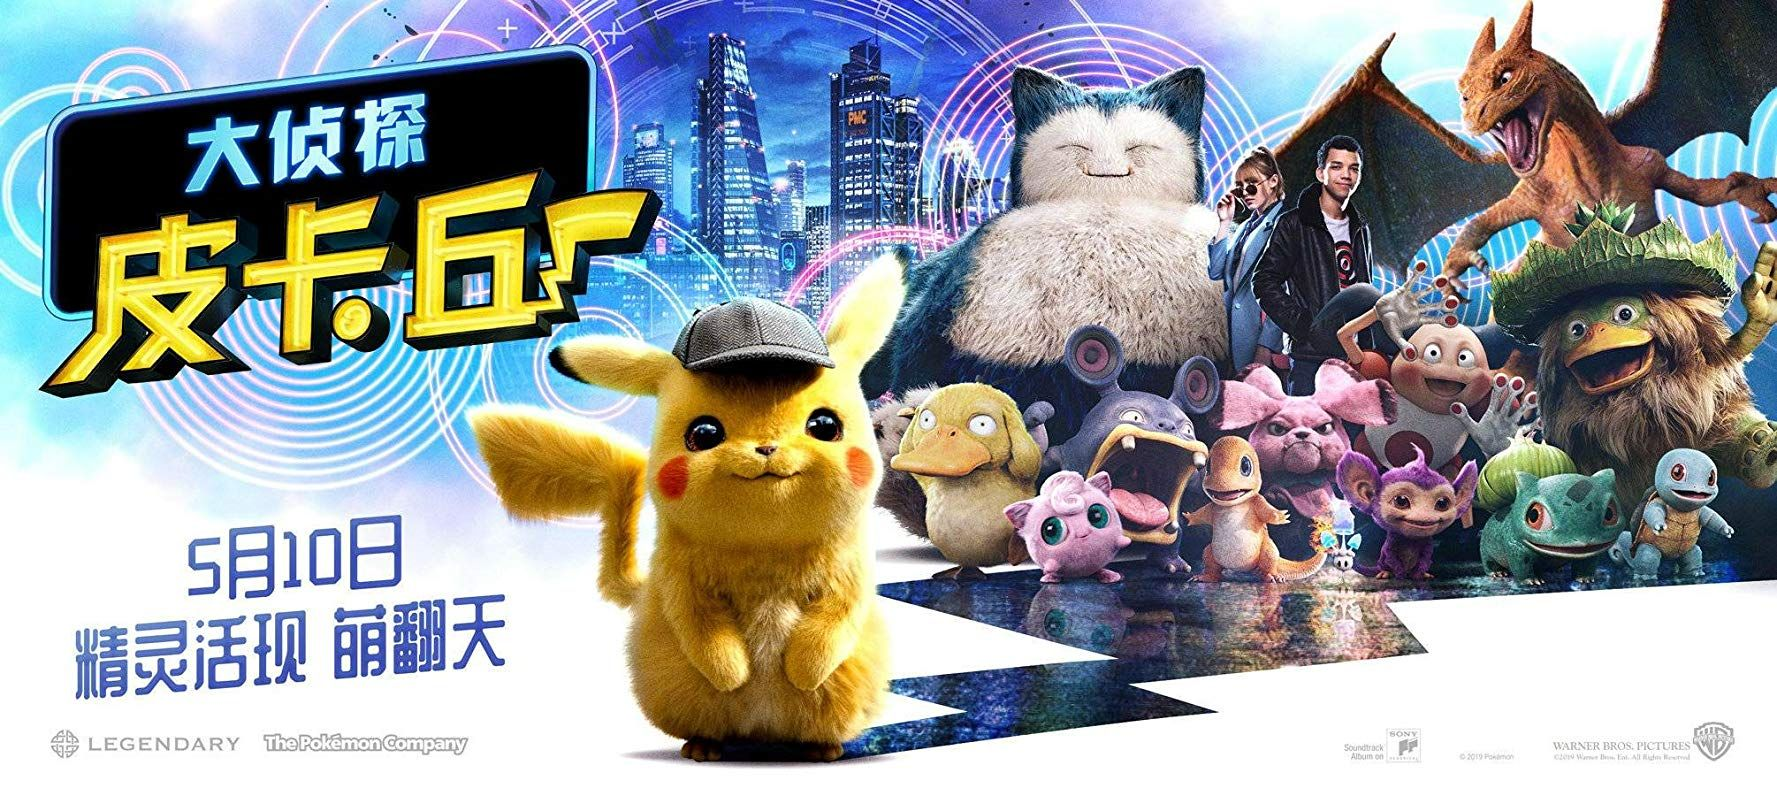 Free download)))~Pokémon: Detective Pikachu 2019 DVDRip FULL